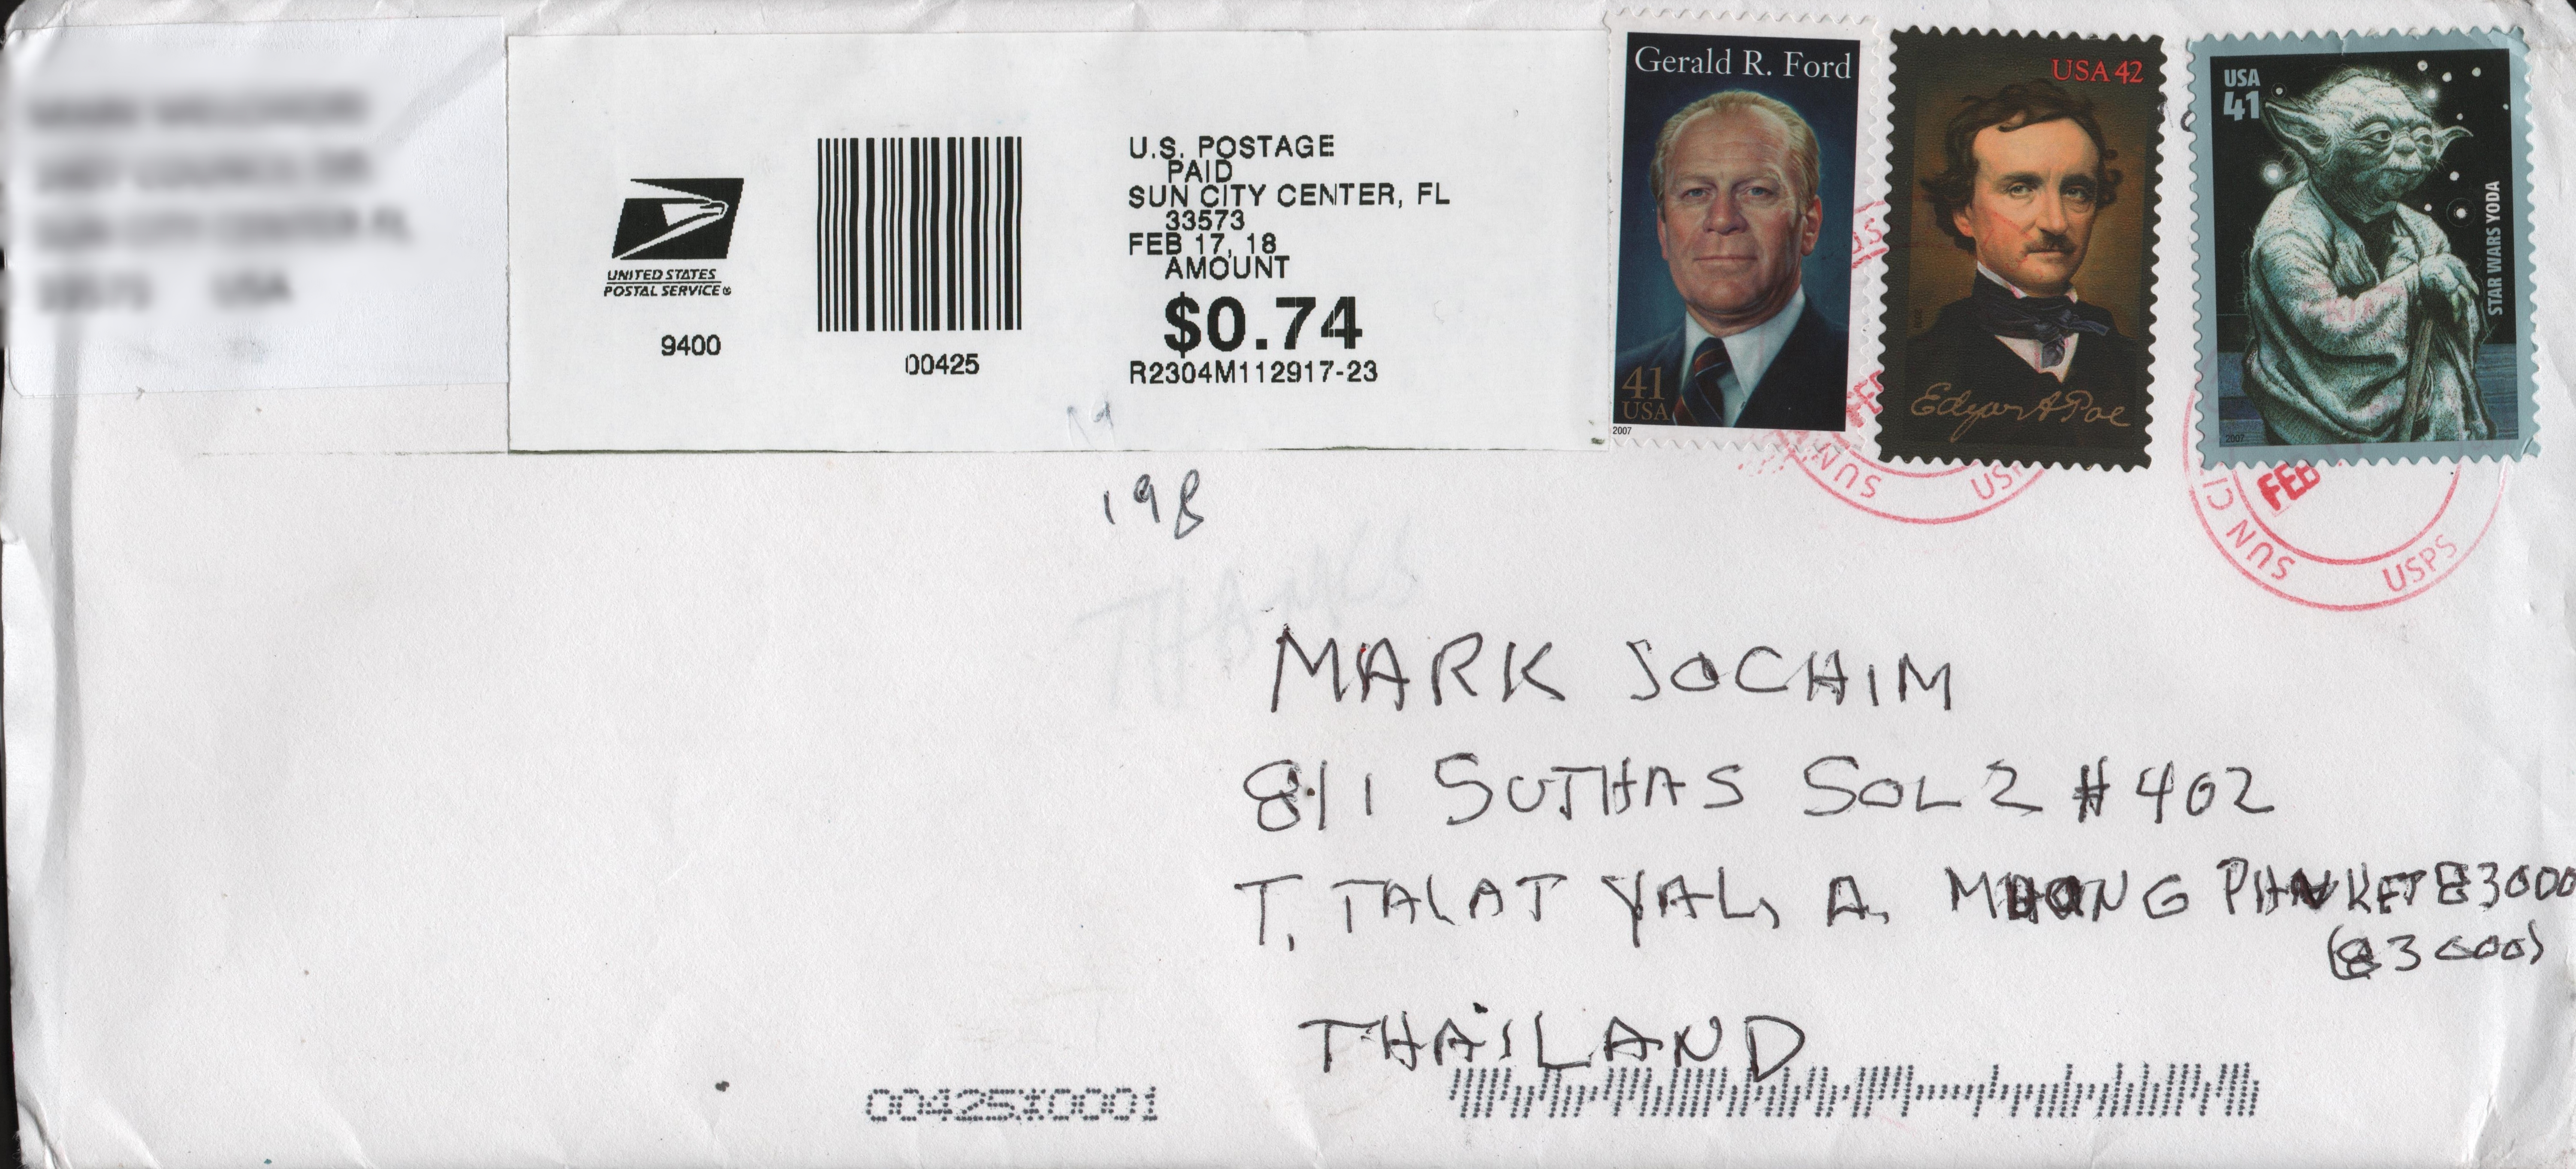 United States Scott #4143n on cover from Florida, United States, February 2018